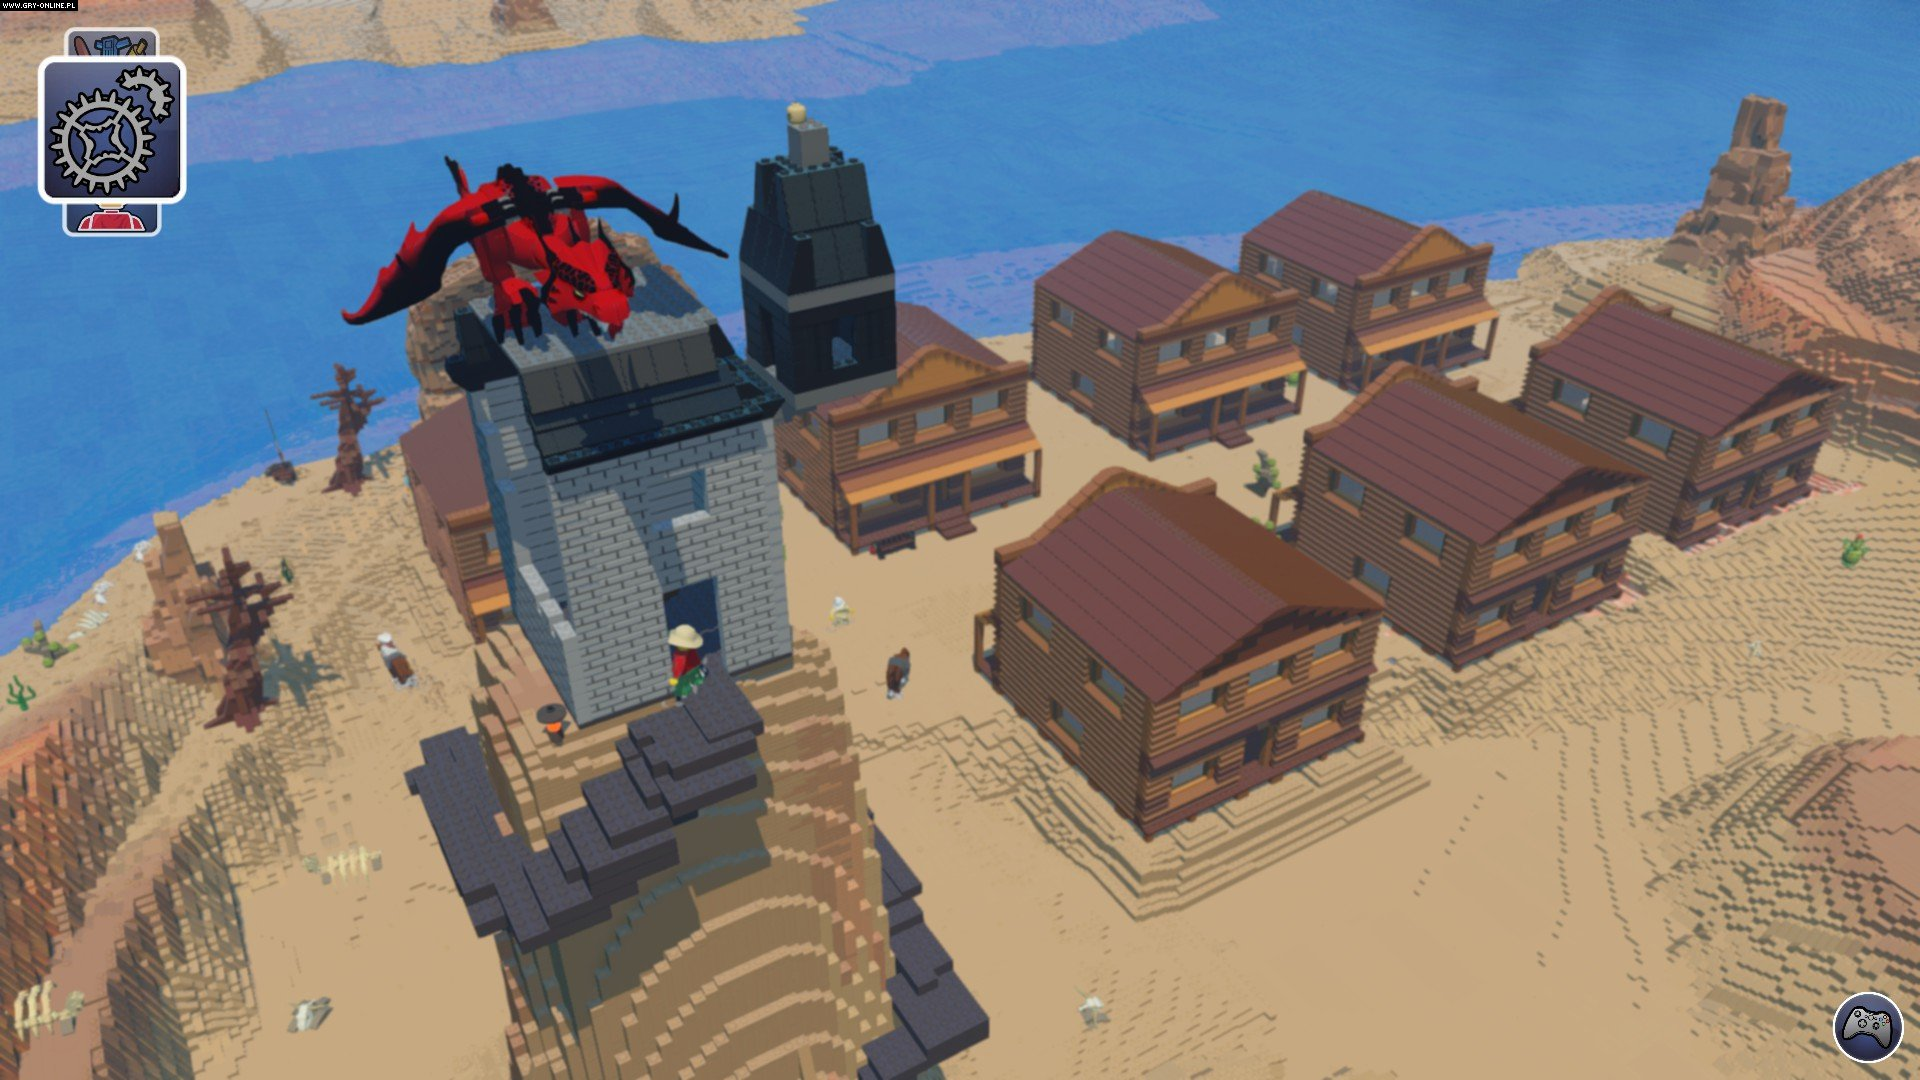 LEGO Worlds PC, PS4, XONE Games Image 21/21, Traveller's Tales, Warner Bros Interactive Entertainment